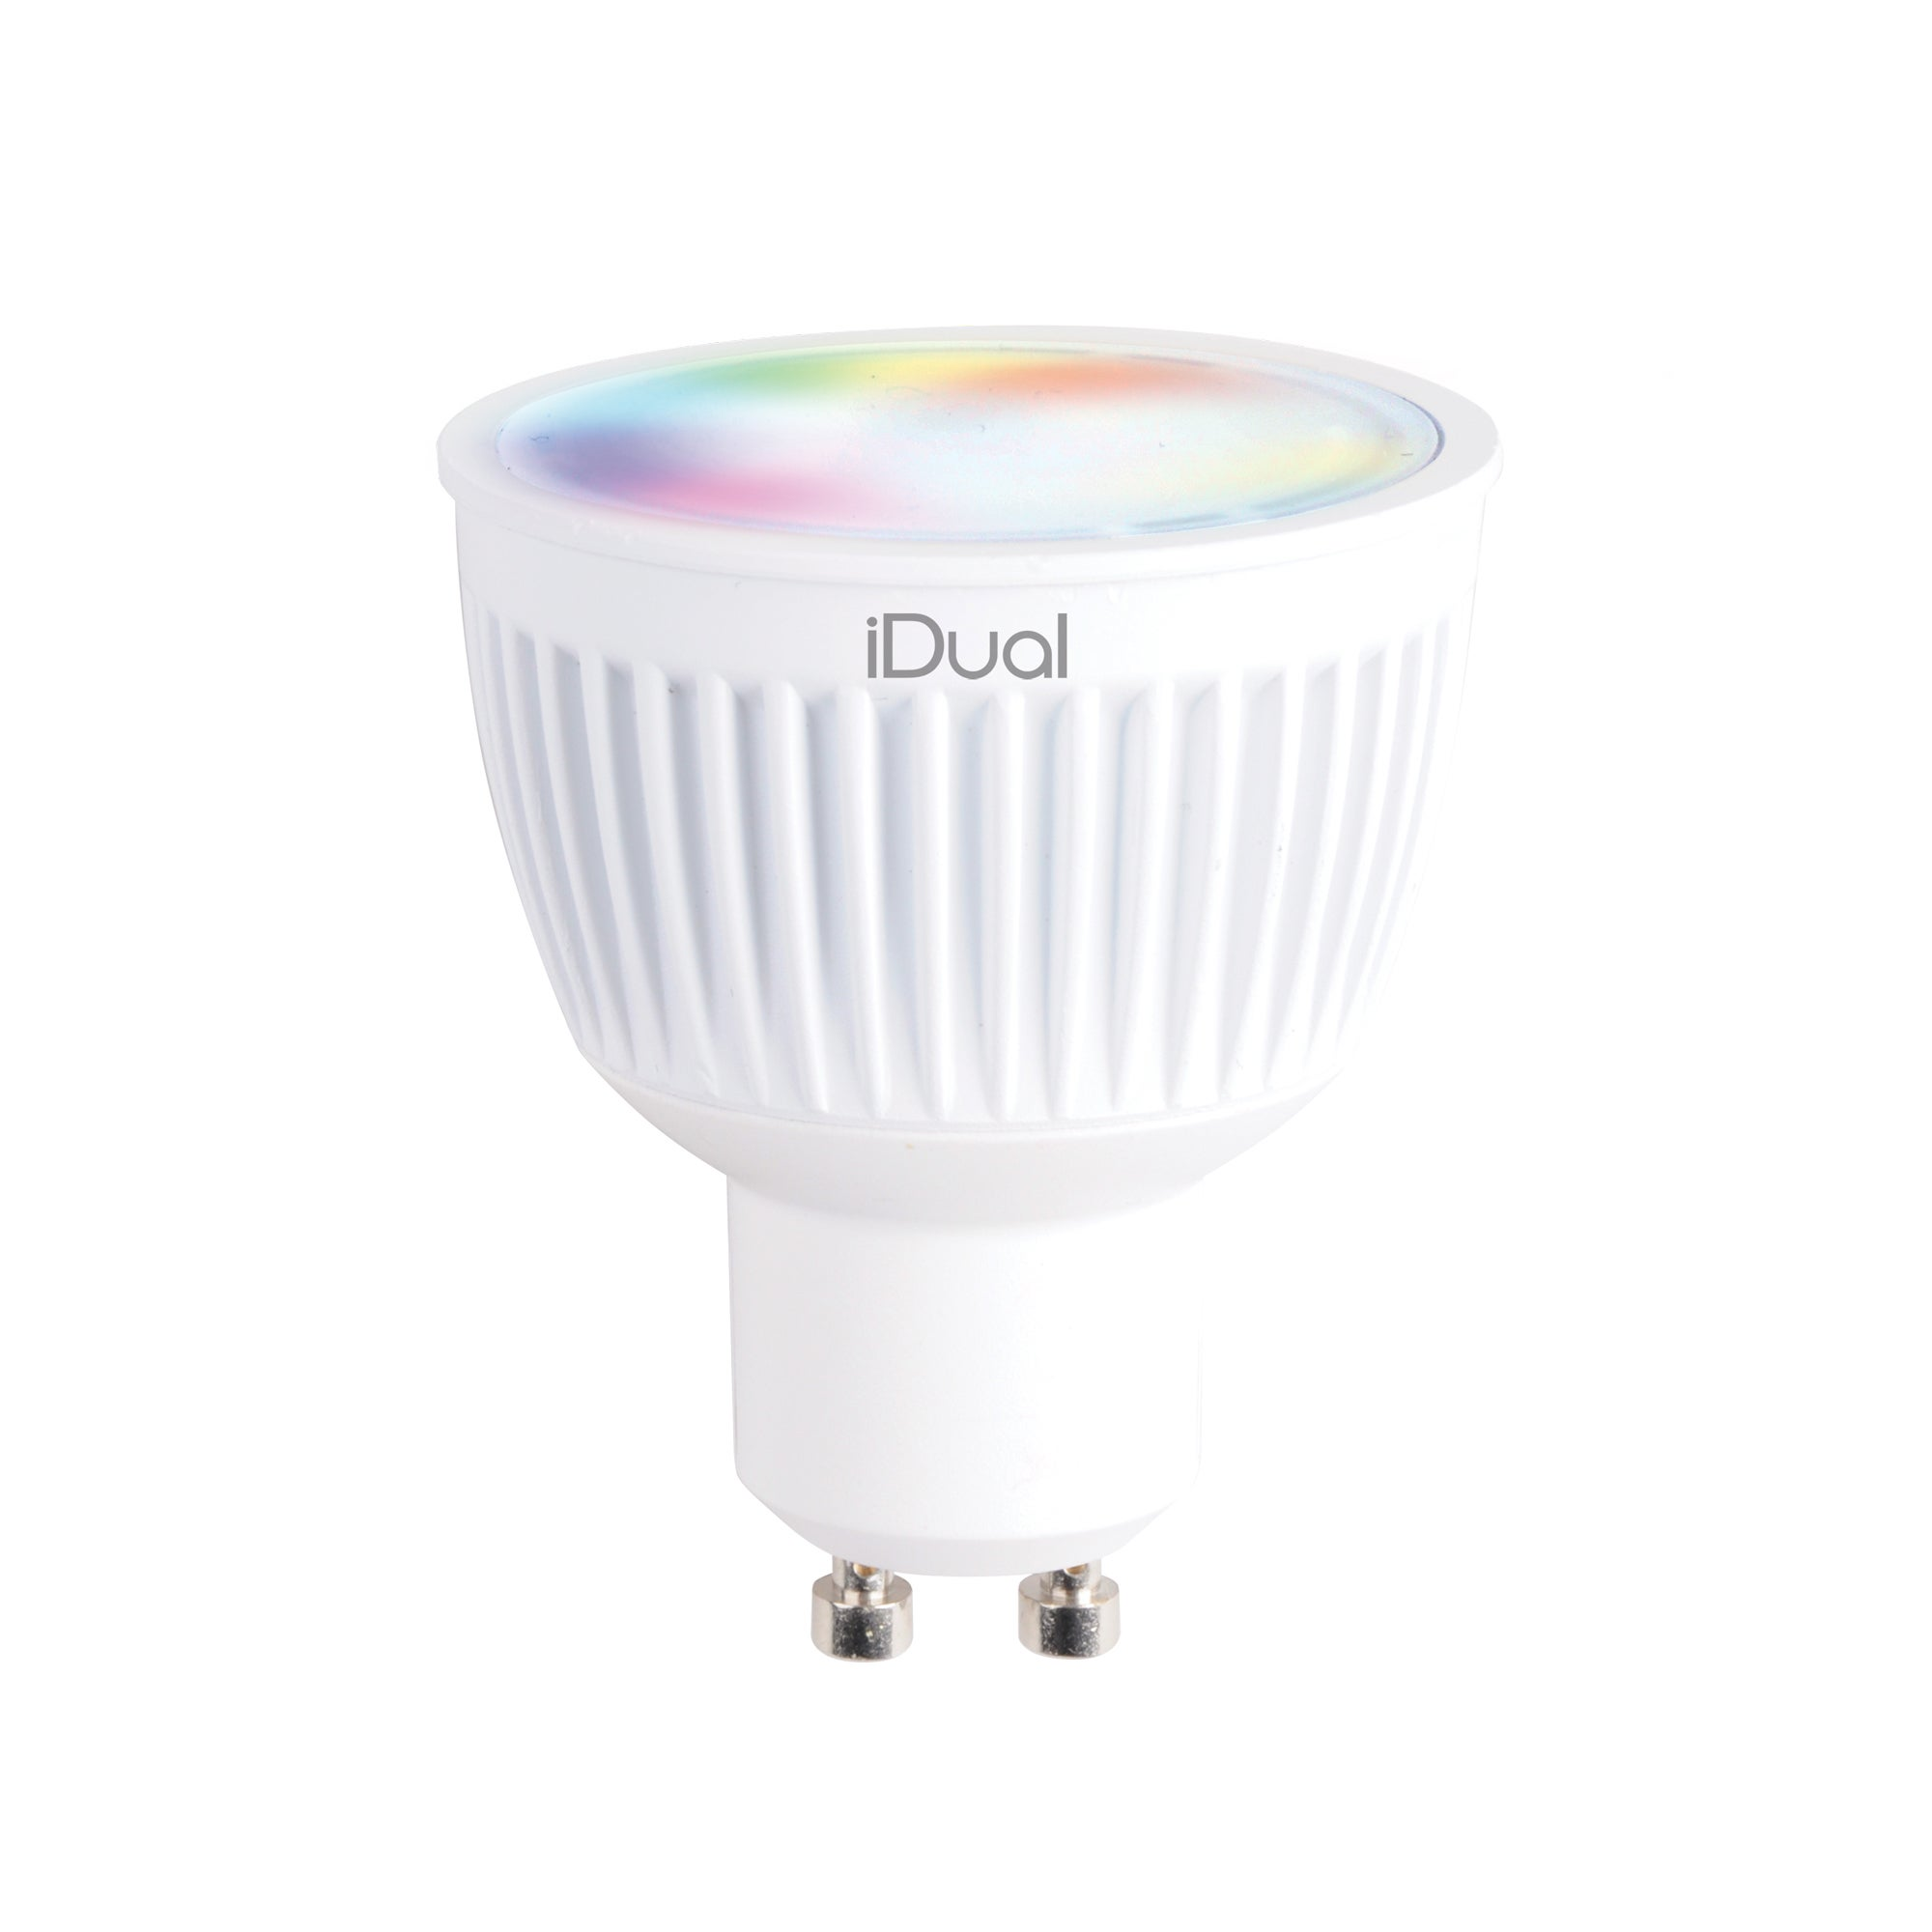 Image of iDual 35 Watt GU10 LED Bulb Pack of 2 with Remote Control White